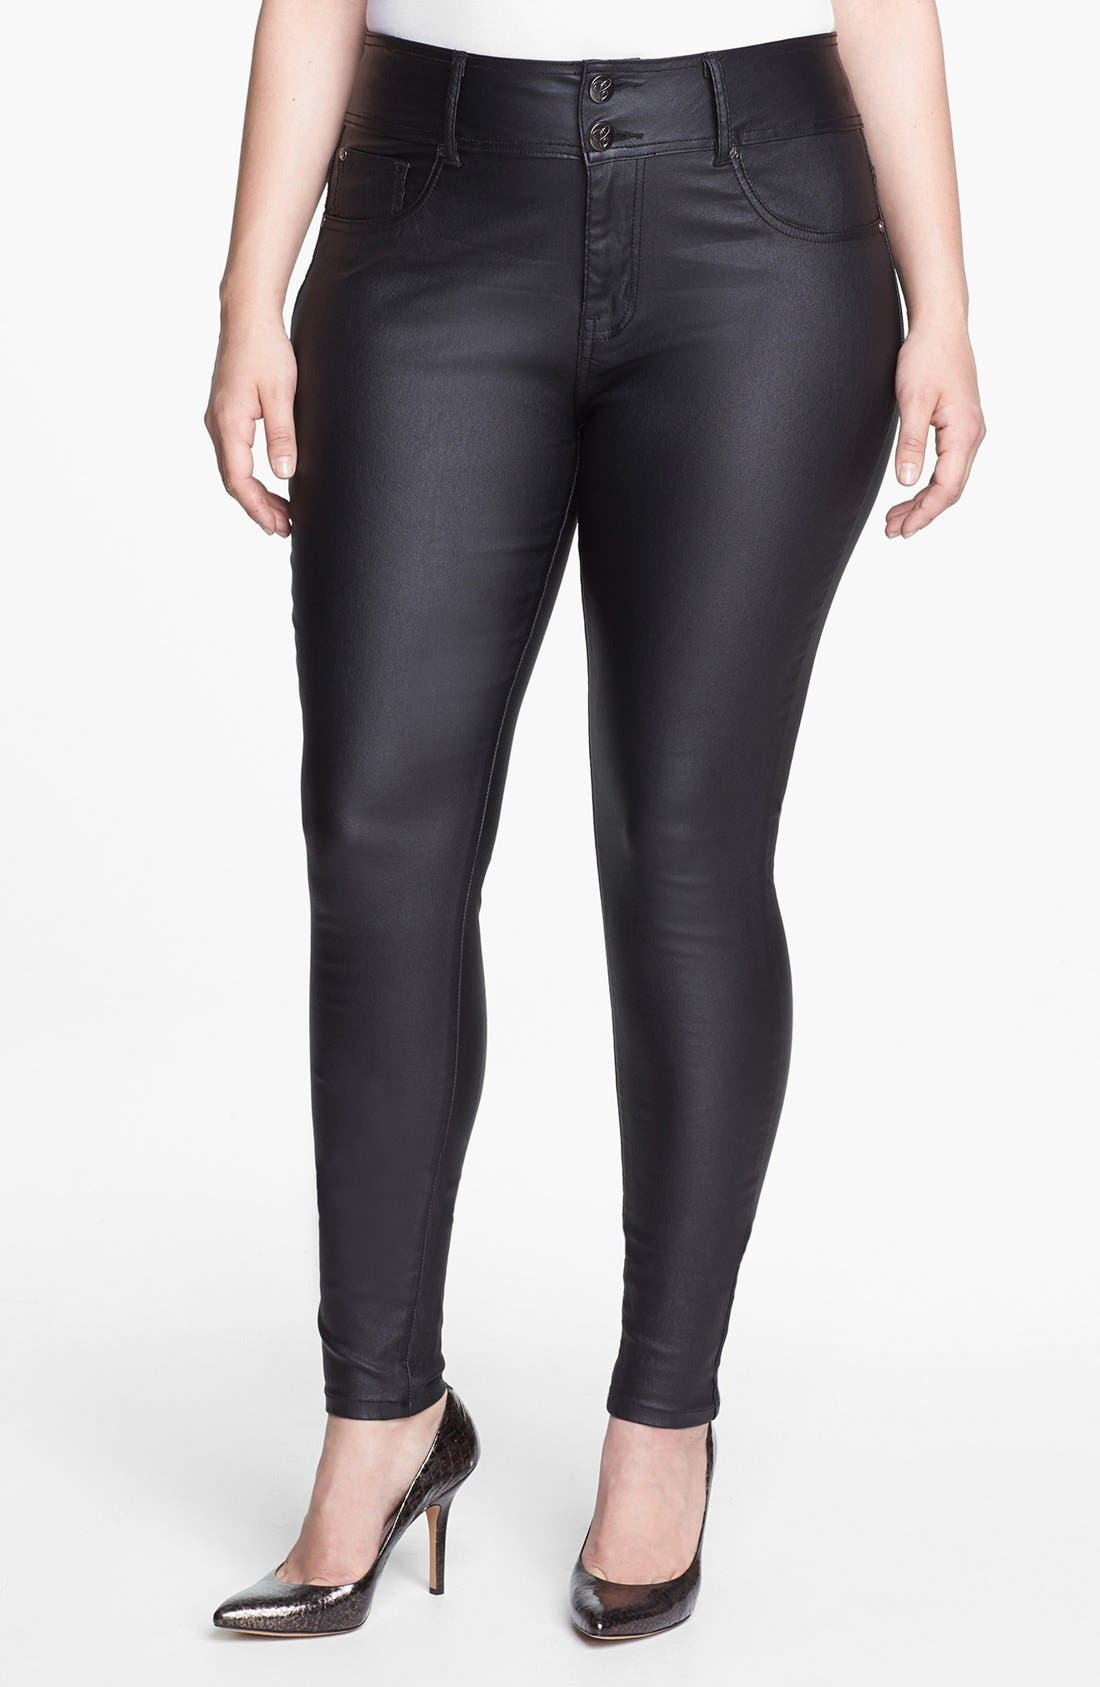 Alternate Image 1 Selected - City Chic Wet Look Stretch Skinny Jeans (Plus Size)